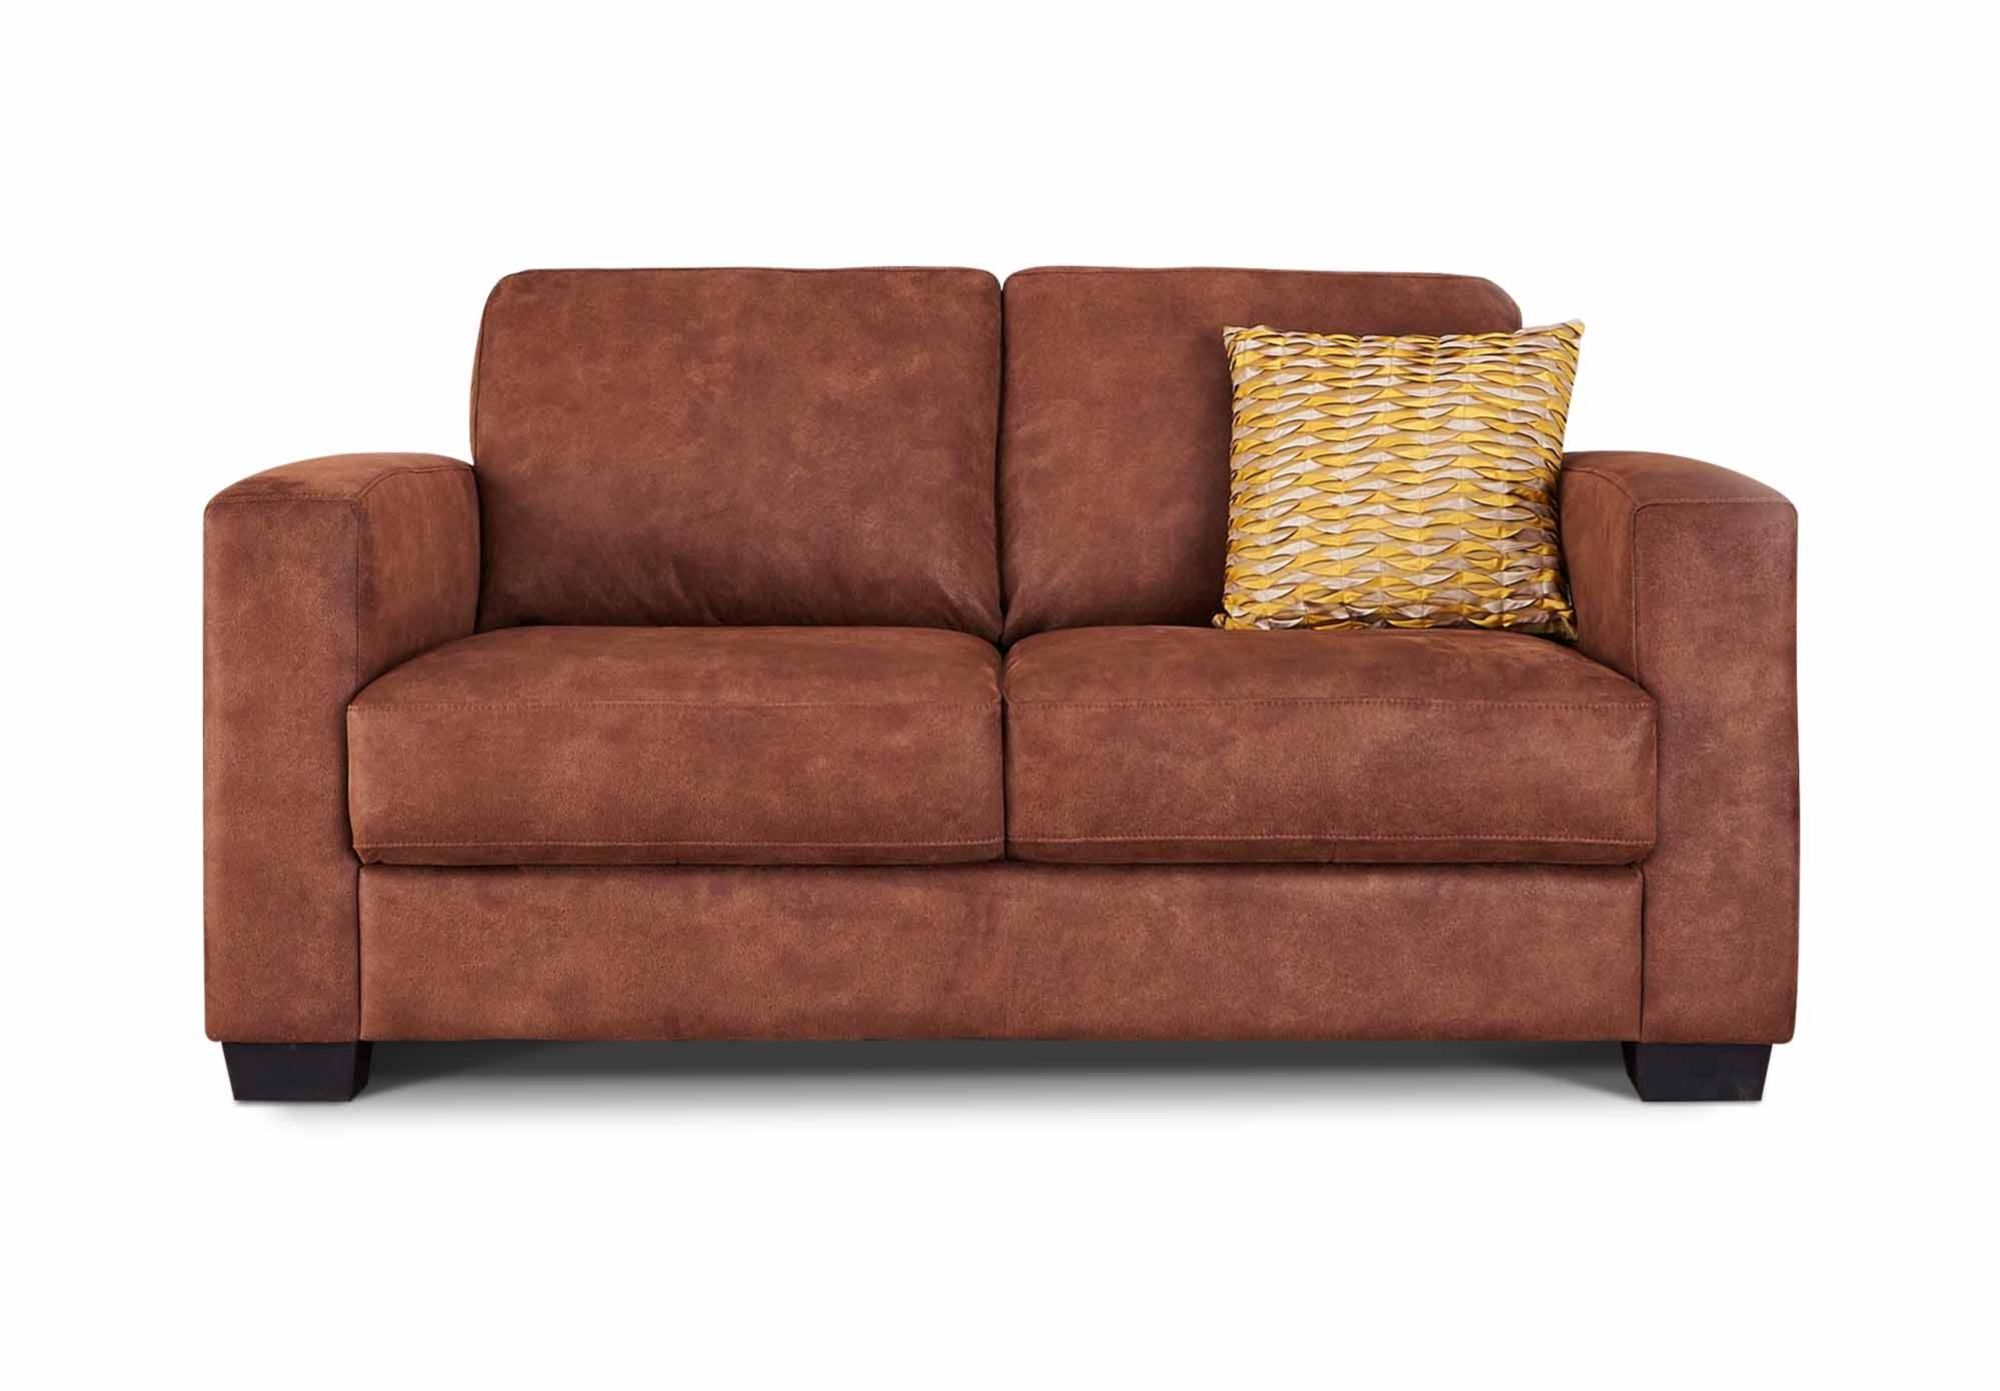 2 seater sofa - Dante Fabric - Living Room Furniture ...